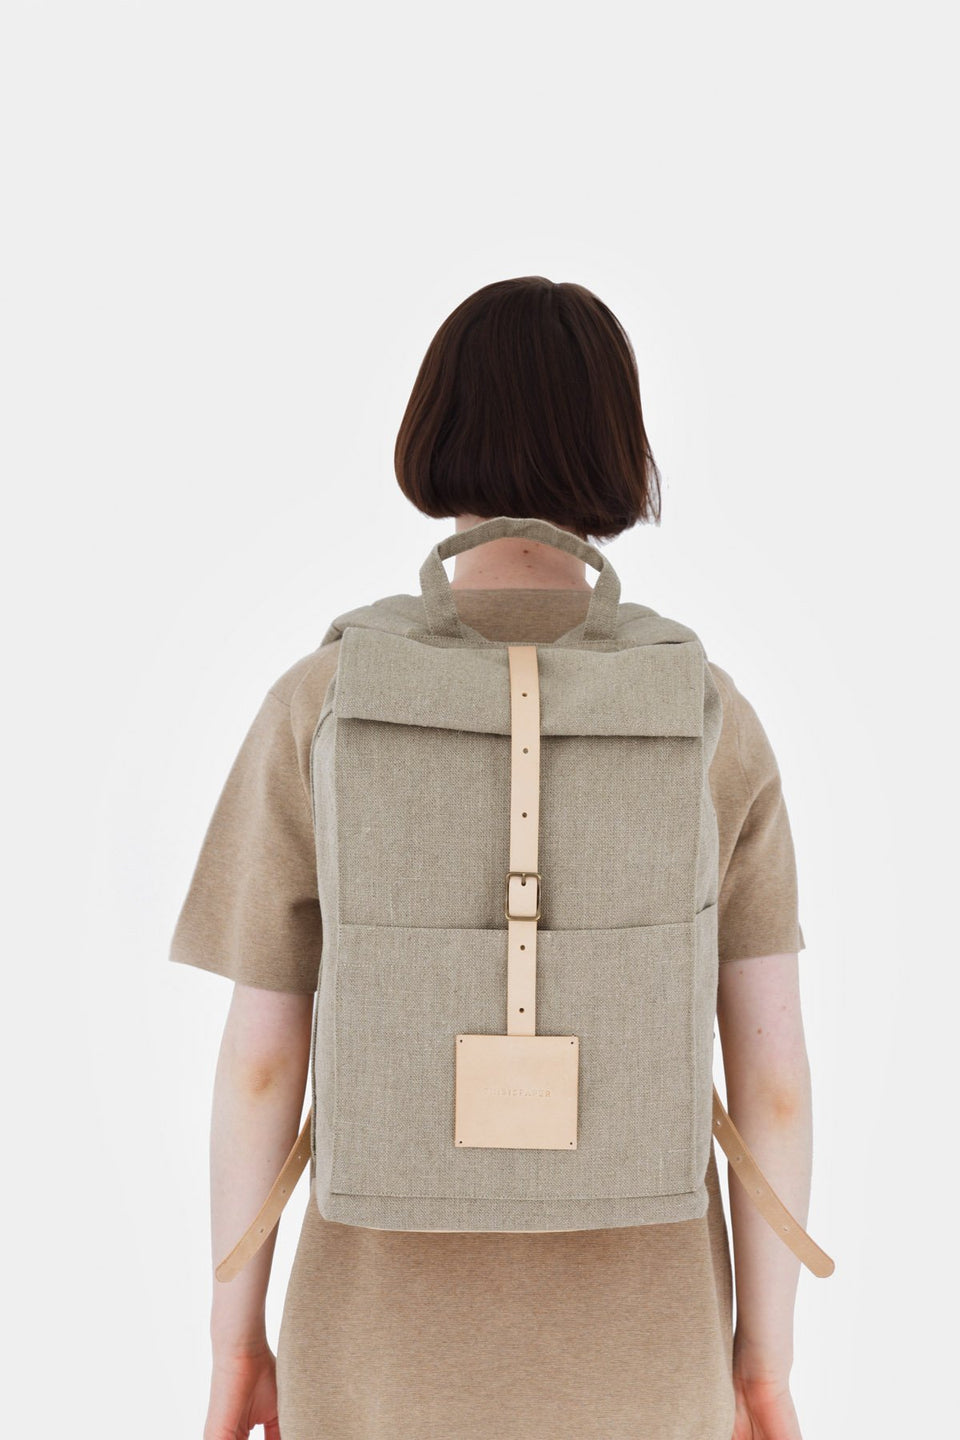 Thisispaper Top Roll Backpack Raw Natural